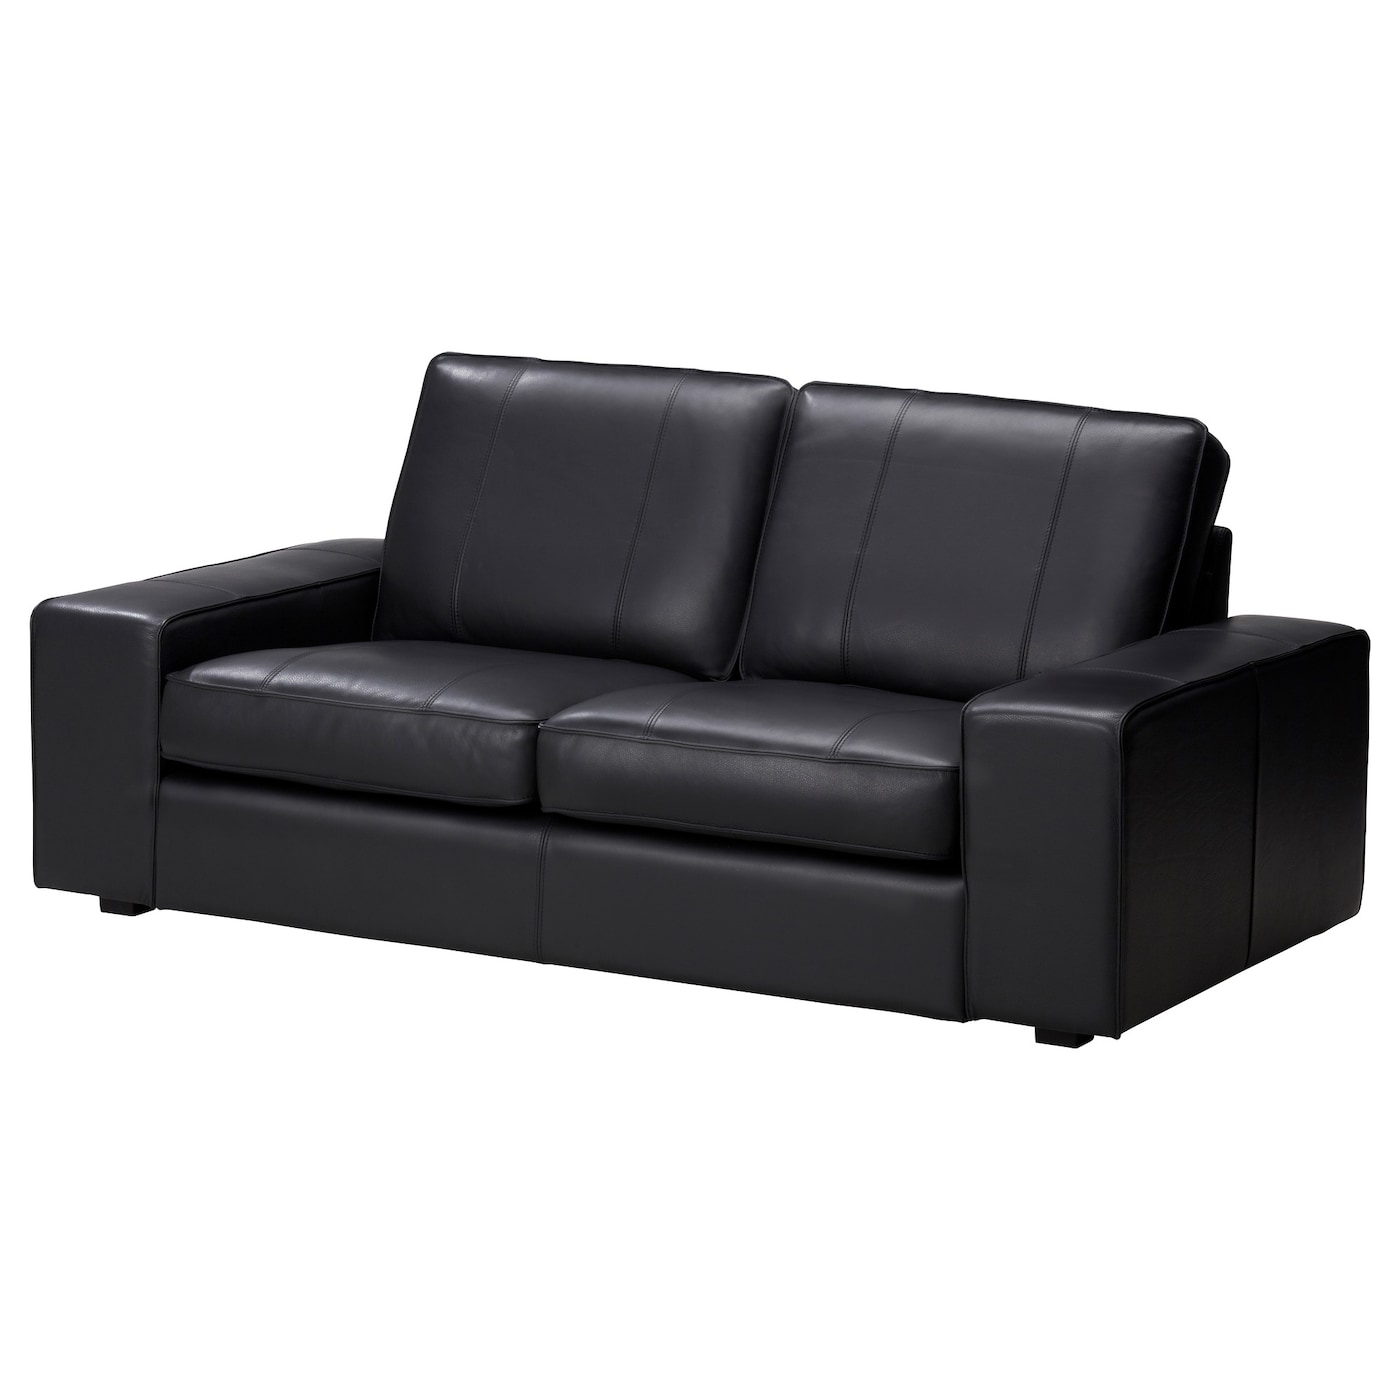 IKEA KIVIK two-seat sofa 10 year guarantee. Read about the terms in the guarantee brochure.